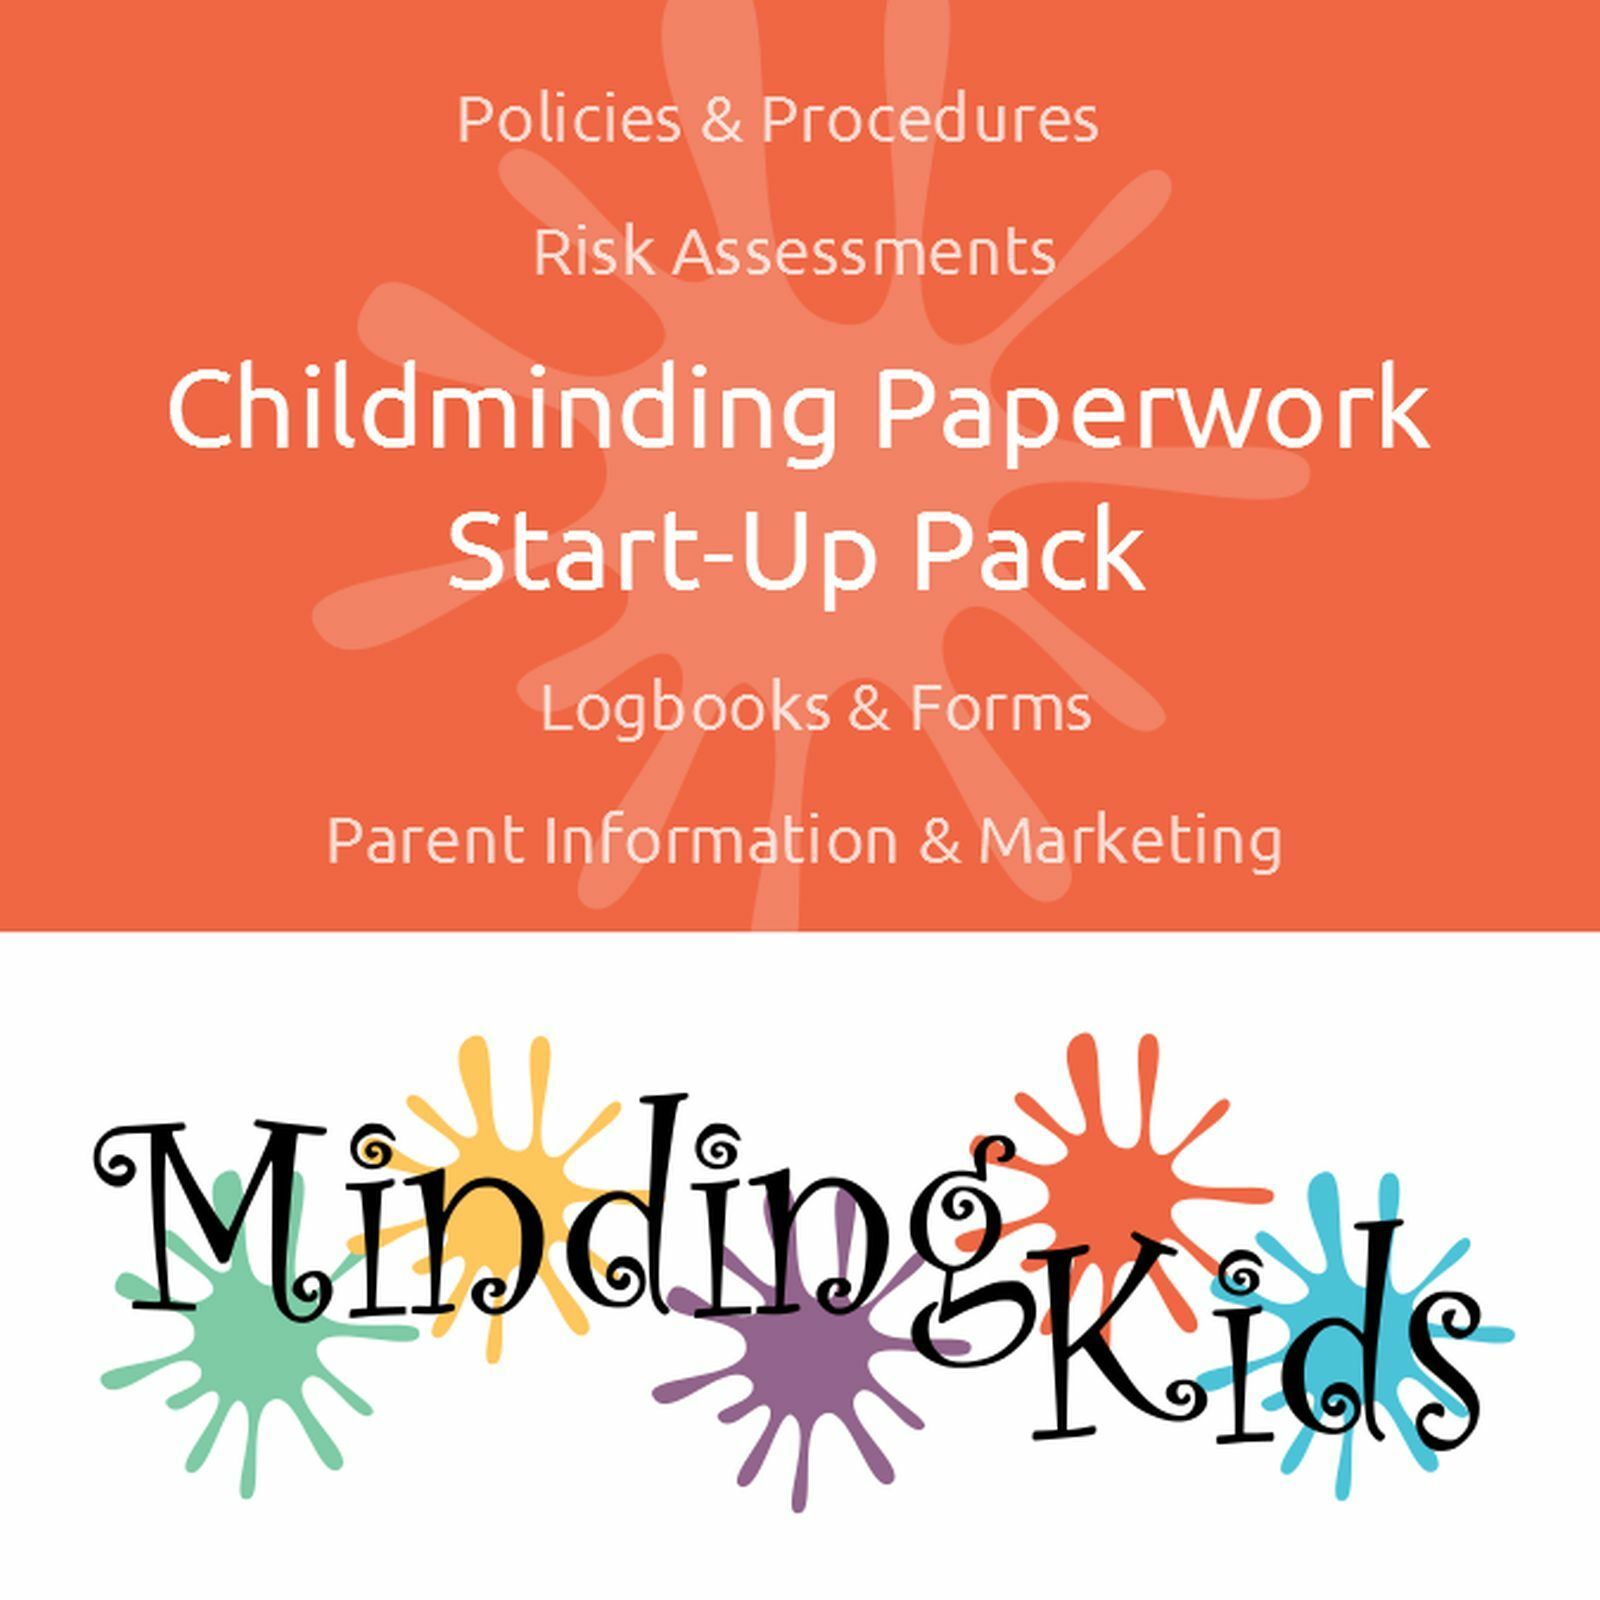 CHILDMINDING PAPERWORK START Up Pack - polices, risk assessments ...